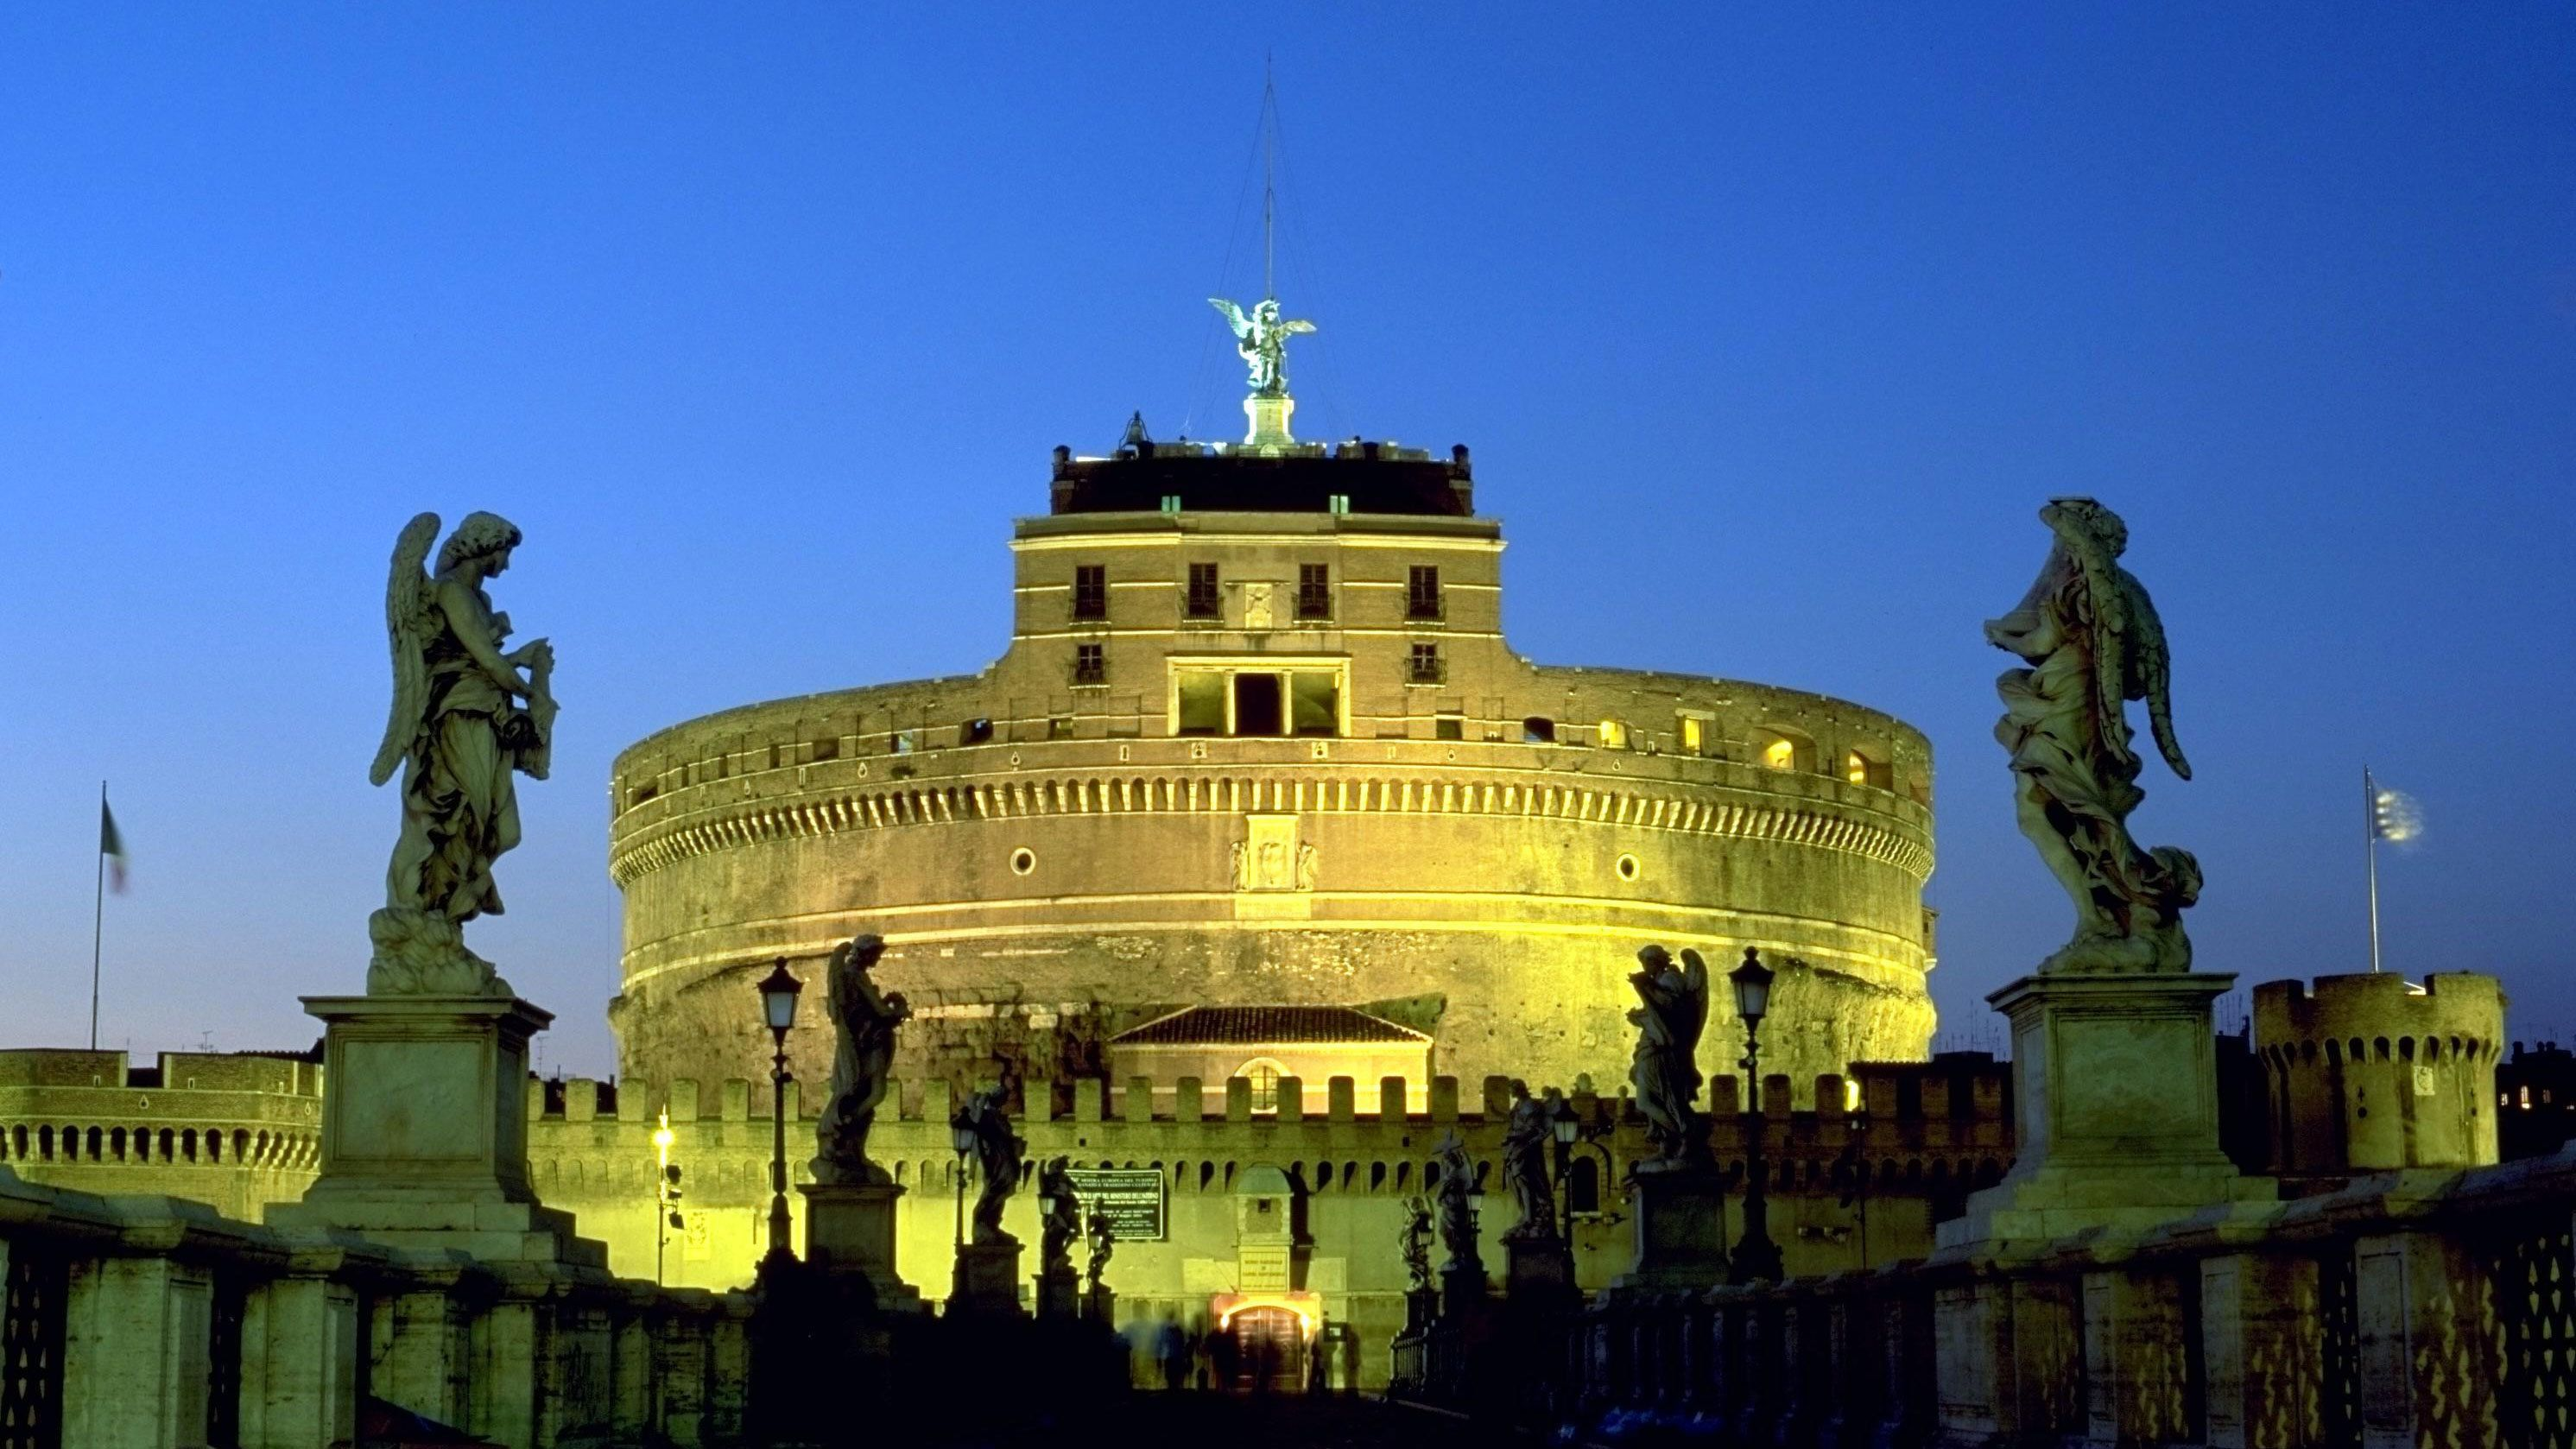 Illuminated building at night on Easy Rome tour in Italy